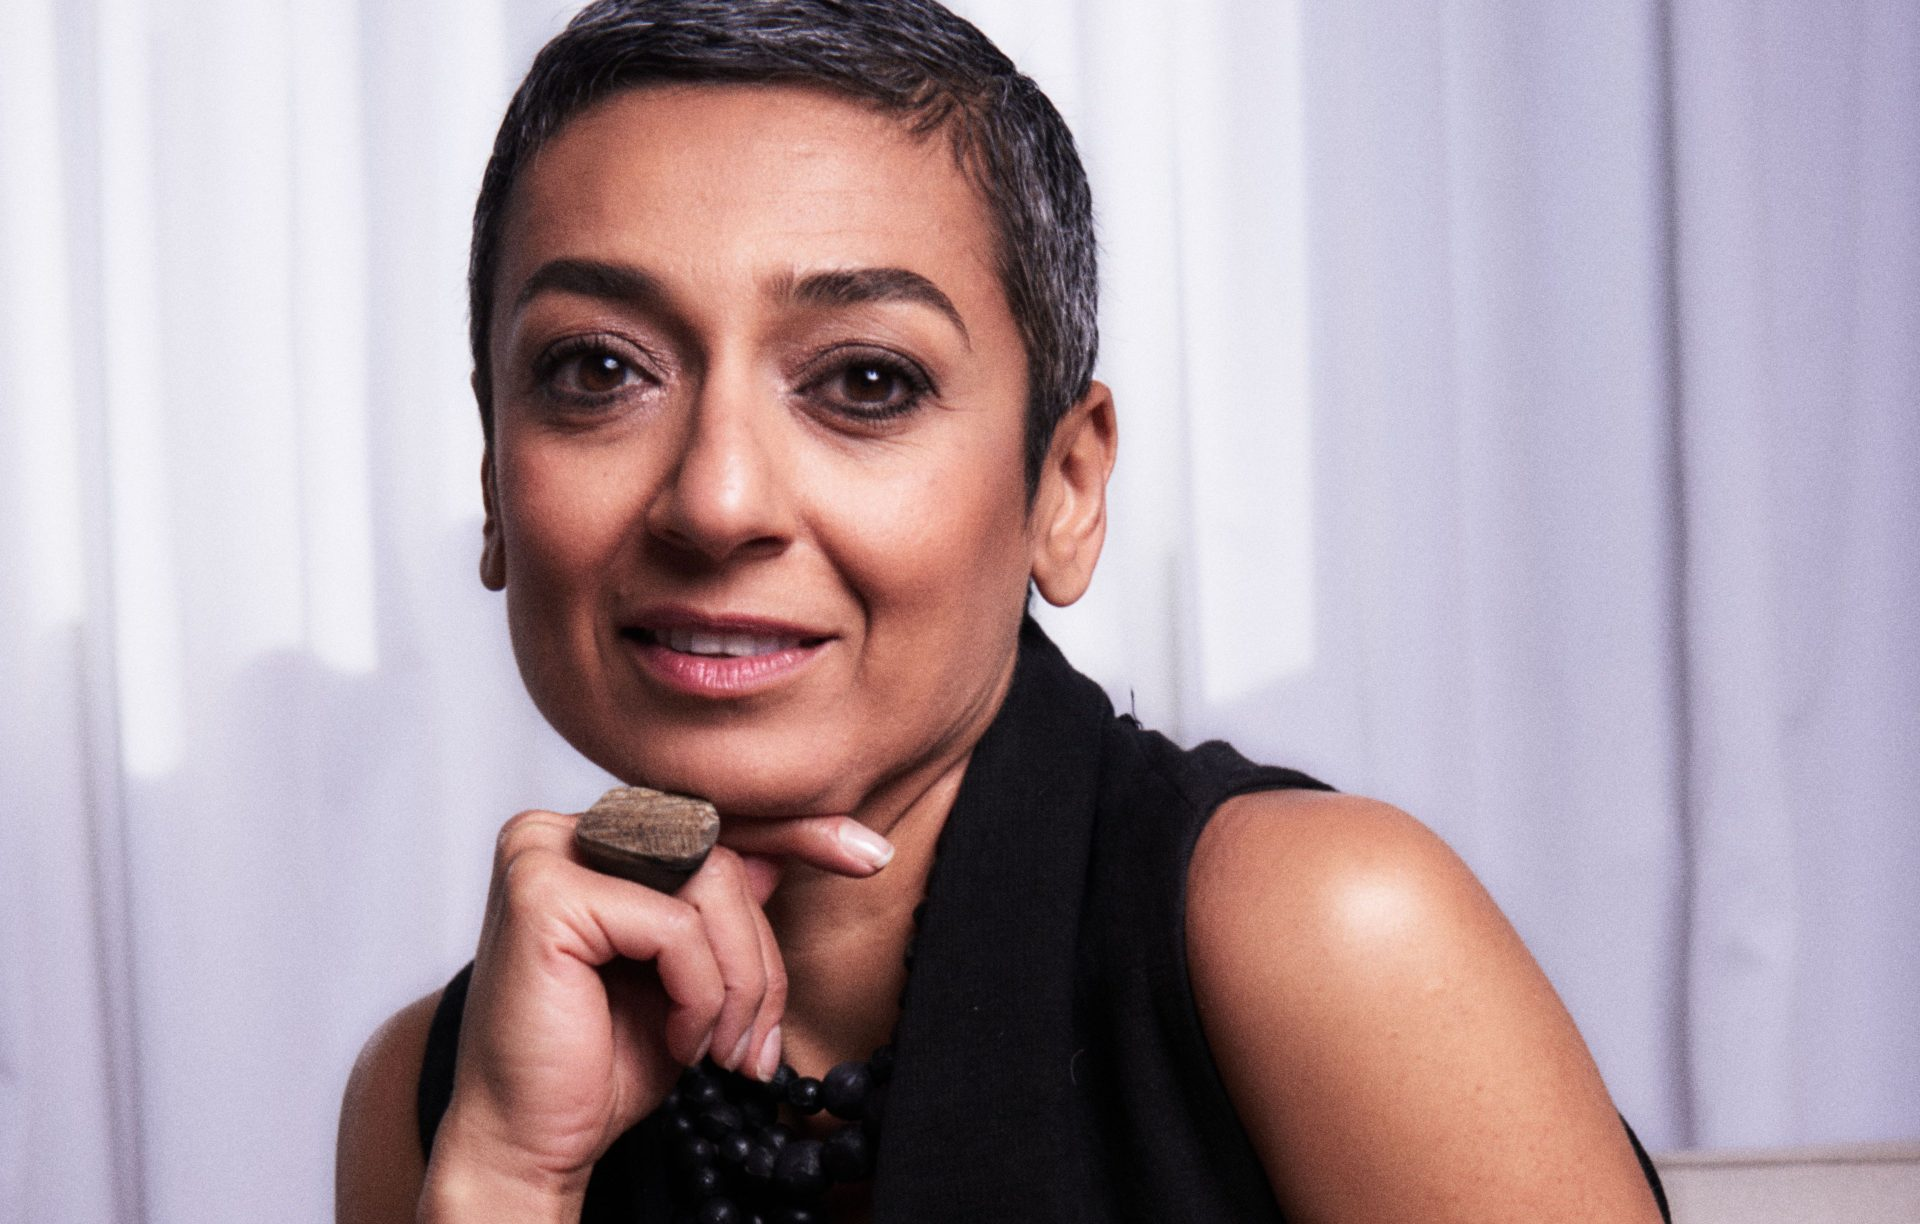 Zainab Salbi is an inspiration for all women